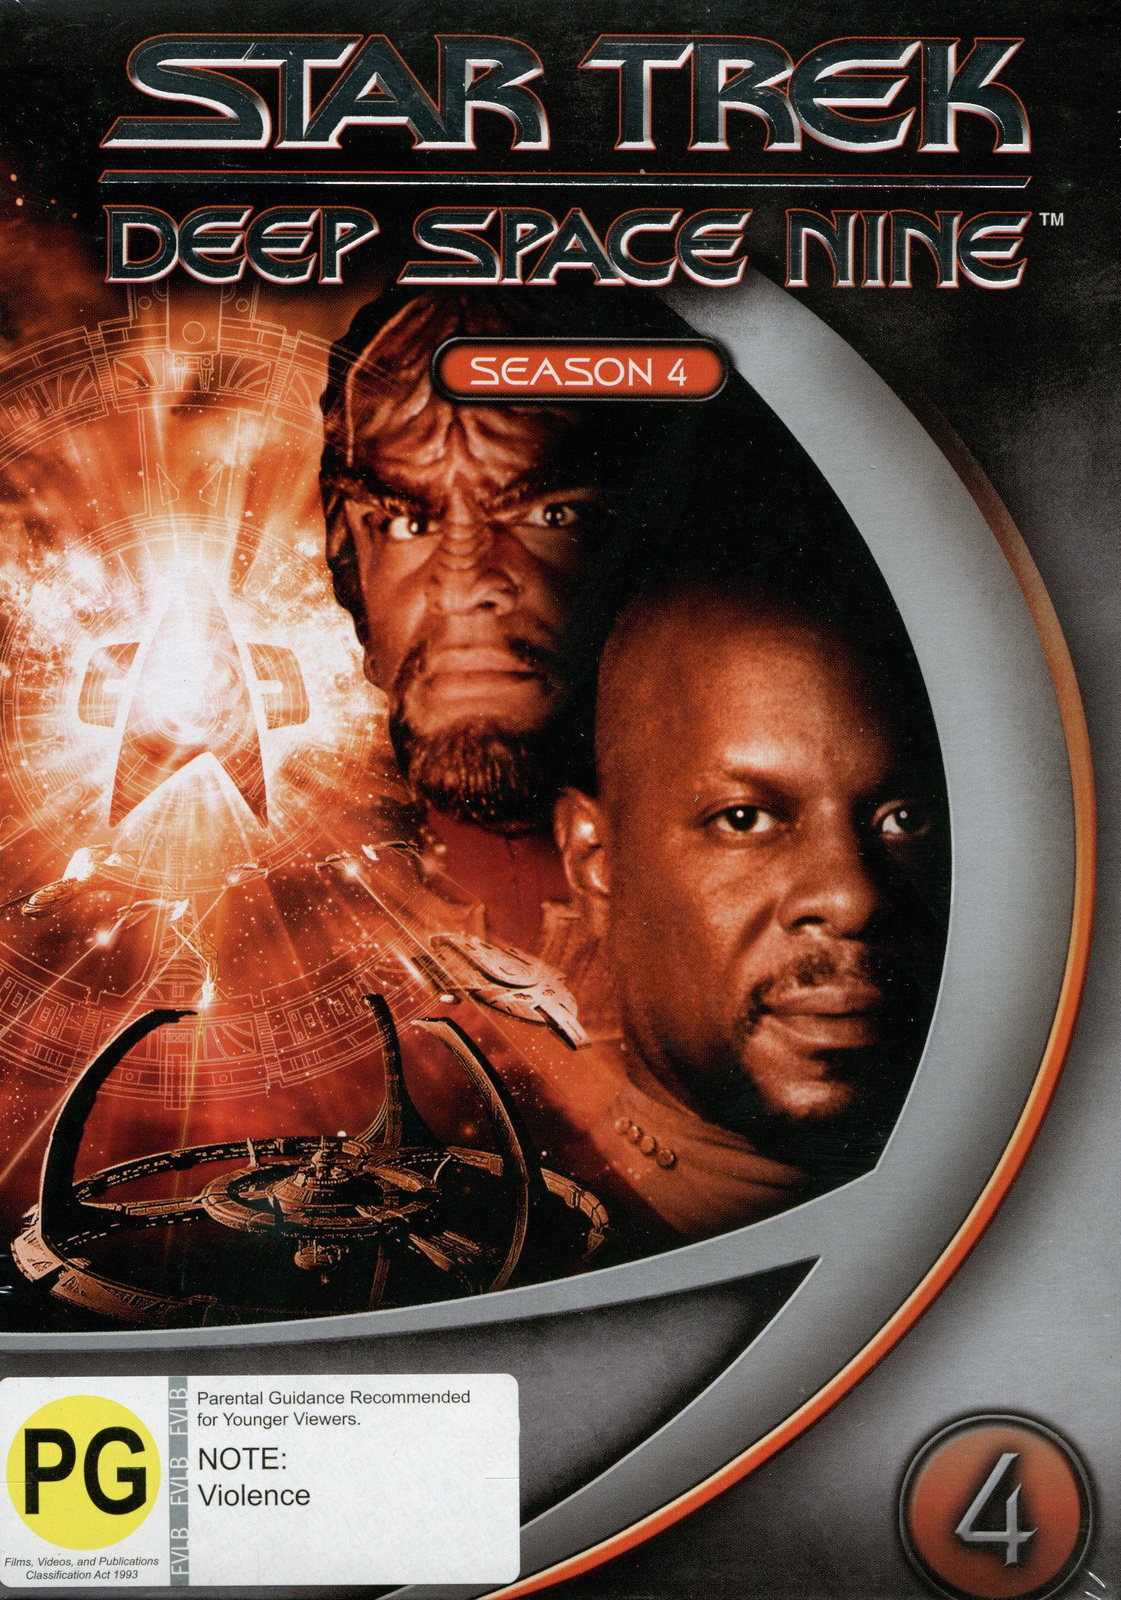 Star Trek: Deep Space Nine - Season 4 on DVD image